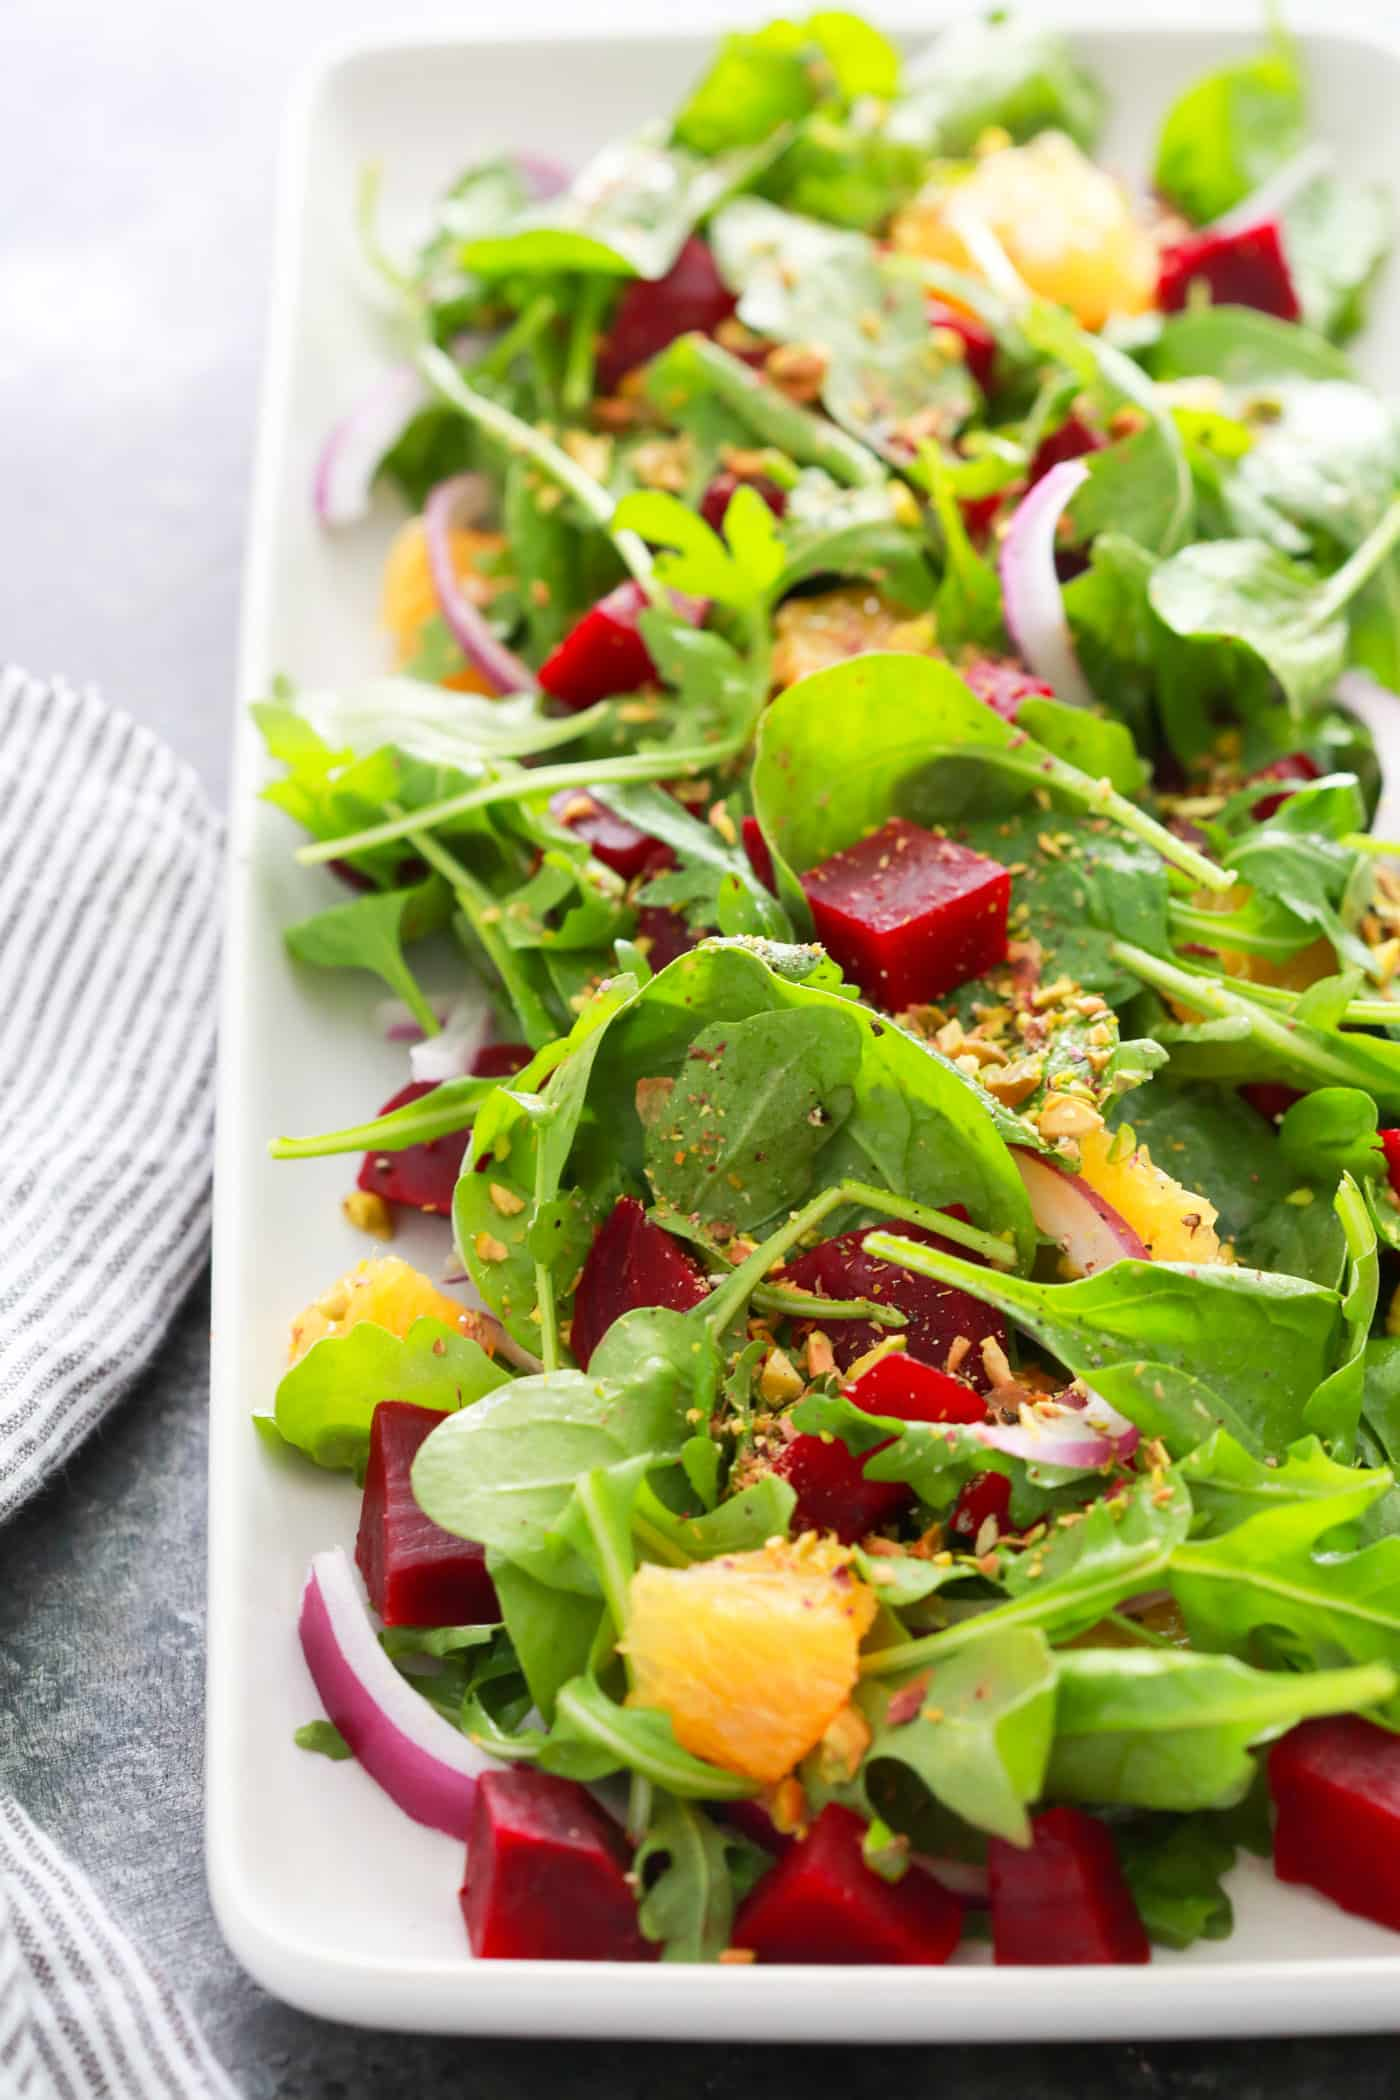 This Autumn Beet Orange Salad is flavorful, healthy, effortless and it's tossed with a tangy orange mustard vinaigrette.